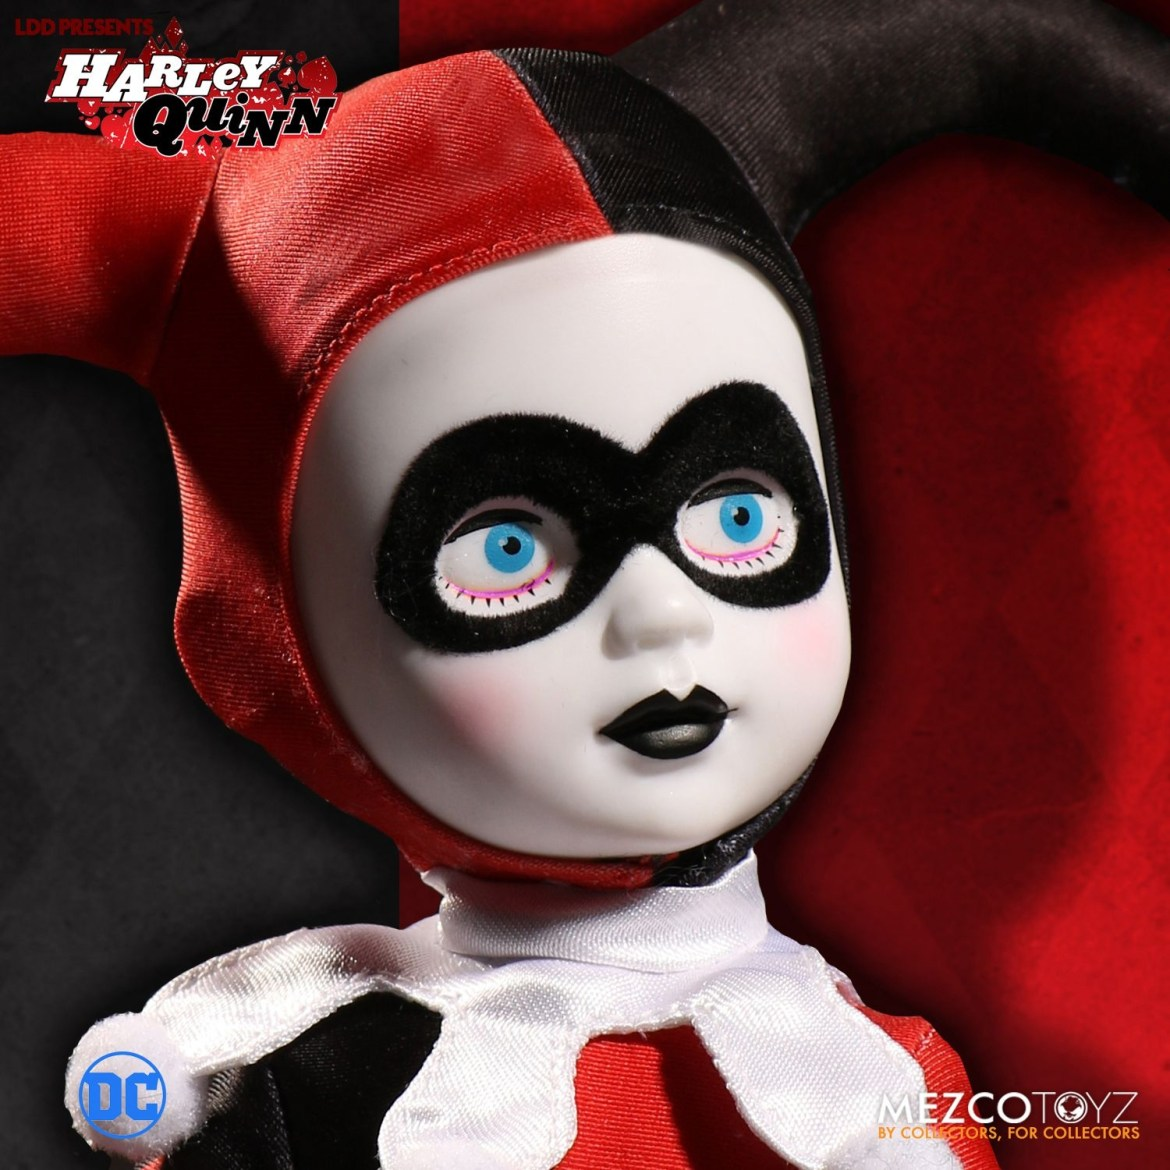 Mezco Unleashes a New Harley Quinn LDD- With Images!